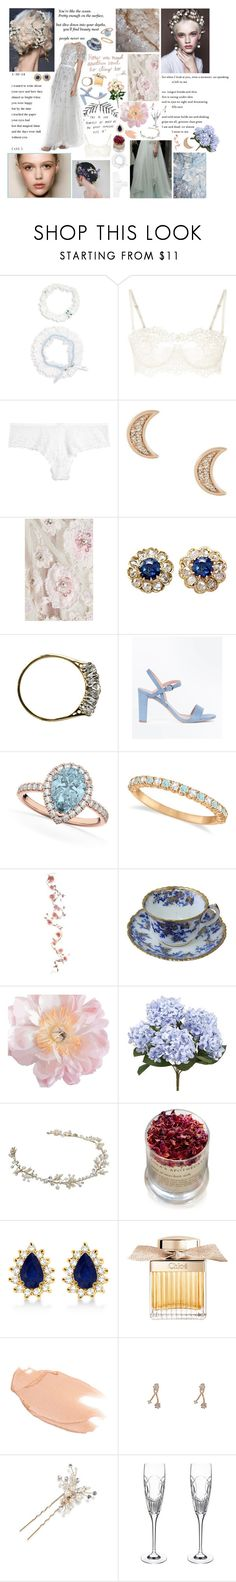 """""""4 months til I get married"""" by loveonthedole ❤ liked on Polyvore featuring Hanky Panky, La Perla, Wacoal, Astley Clarke, Needle & Thread, New Look, Allurez, Lola's Apothecary, Chloé and Too Faced Cosmetics"""